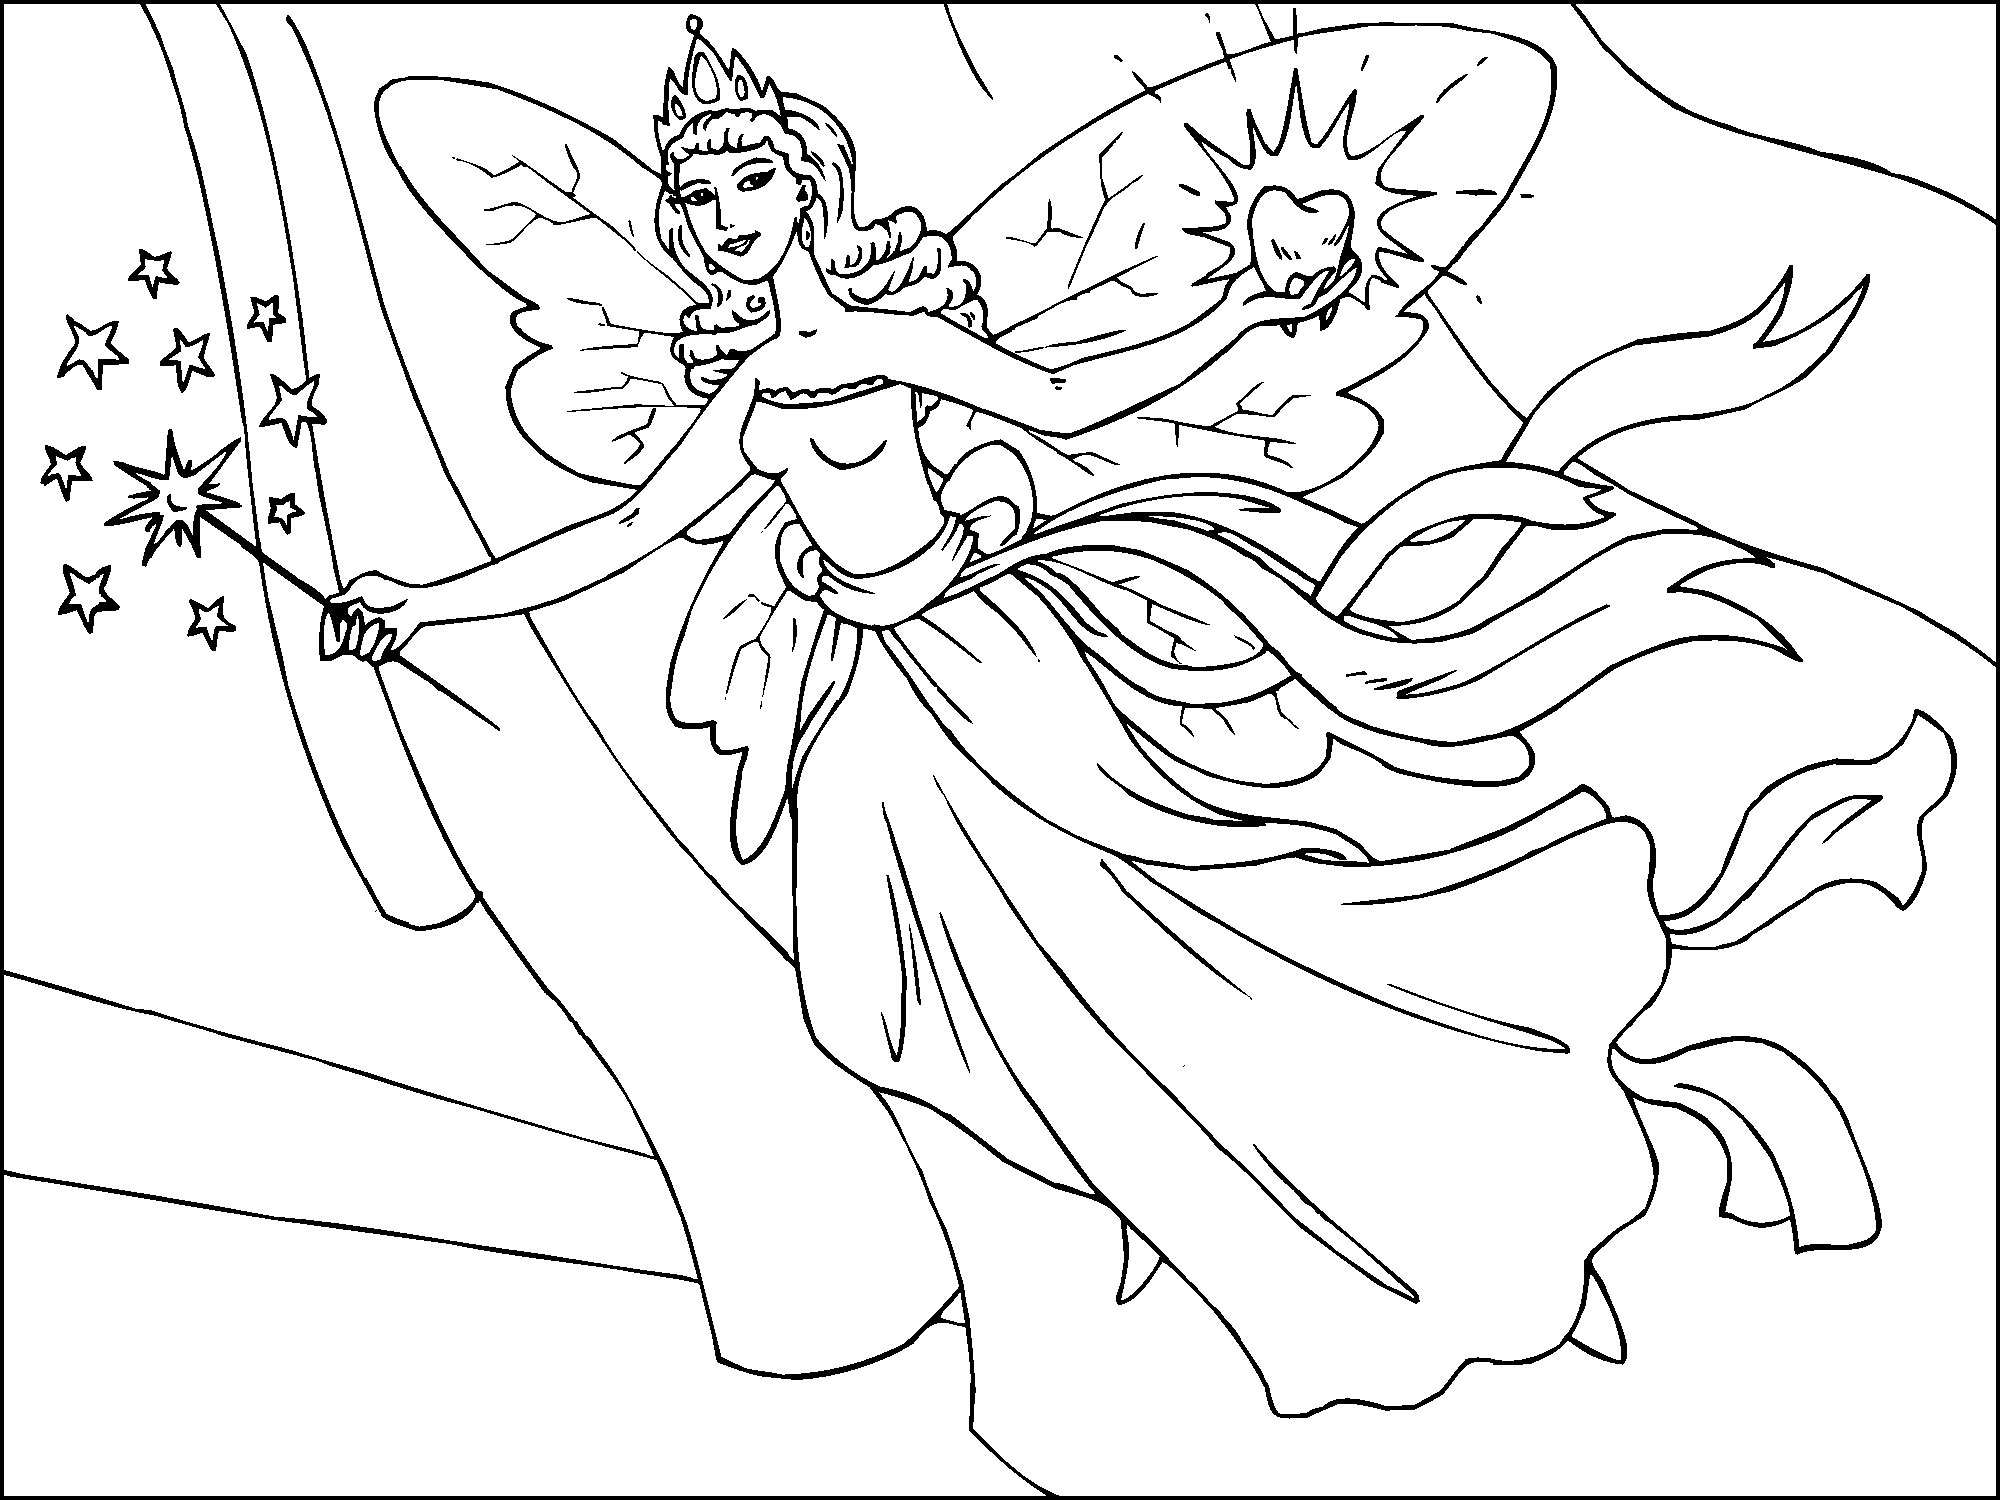 free fairy coloring pages to print - Free Fairy Coloring Pages